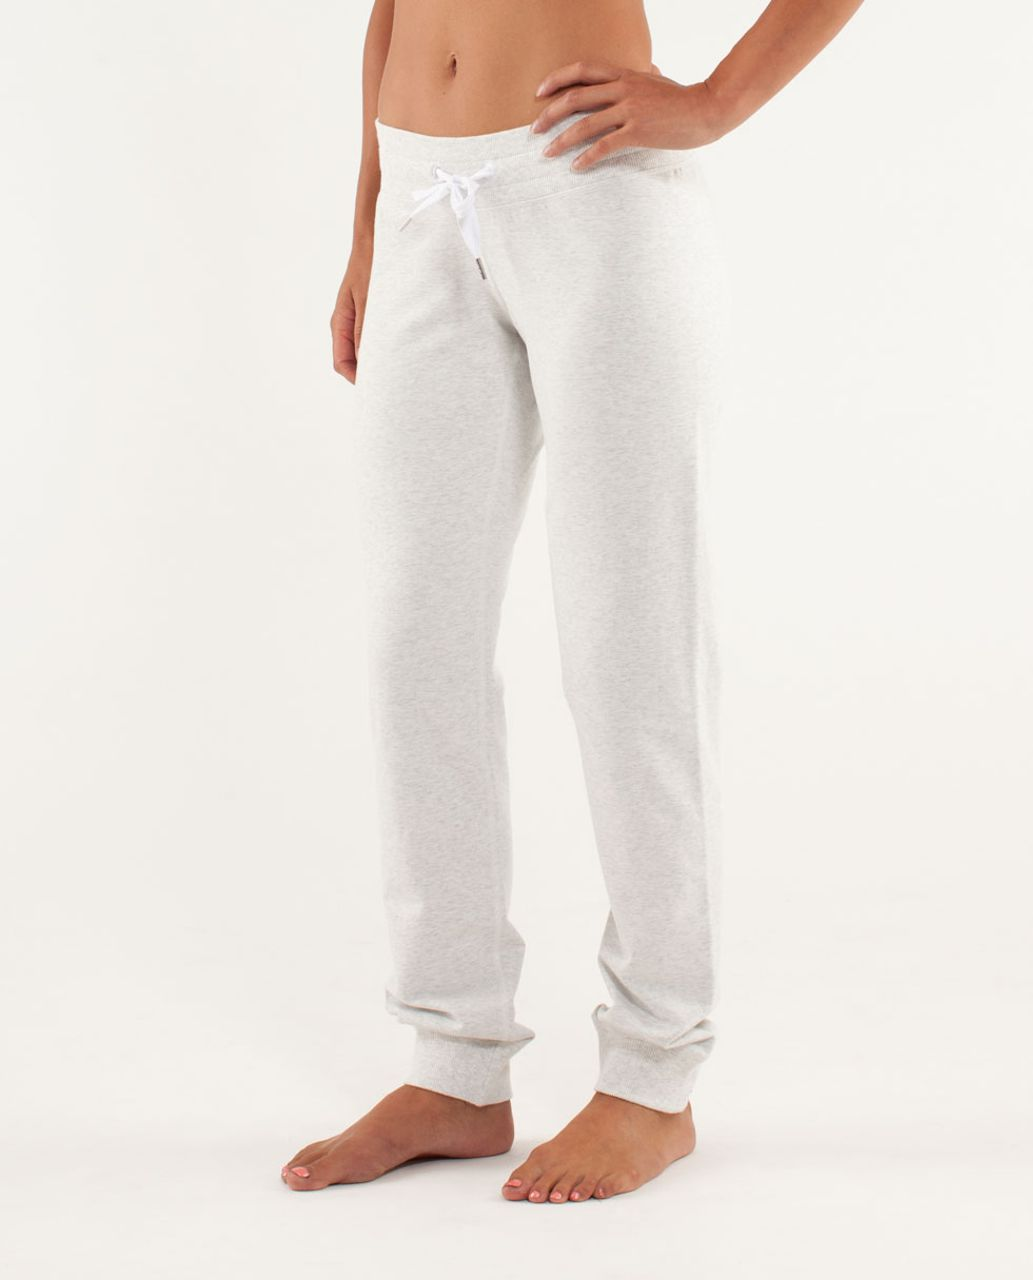 792ed38b9ab98 Lululemon Tea Lounge Pant - Heathered White - lulu fanatics